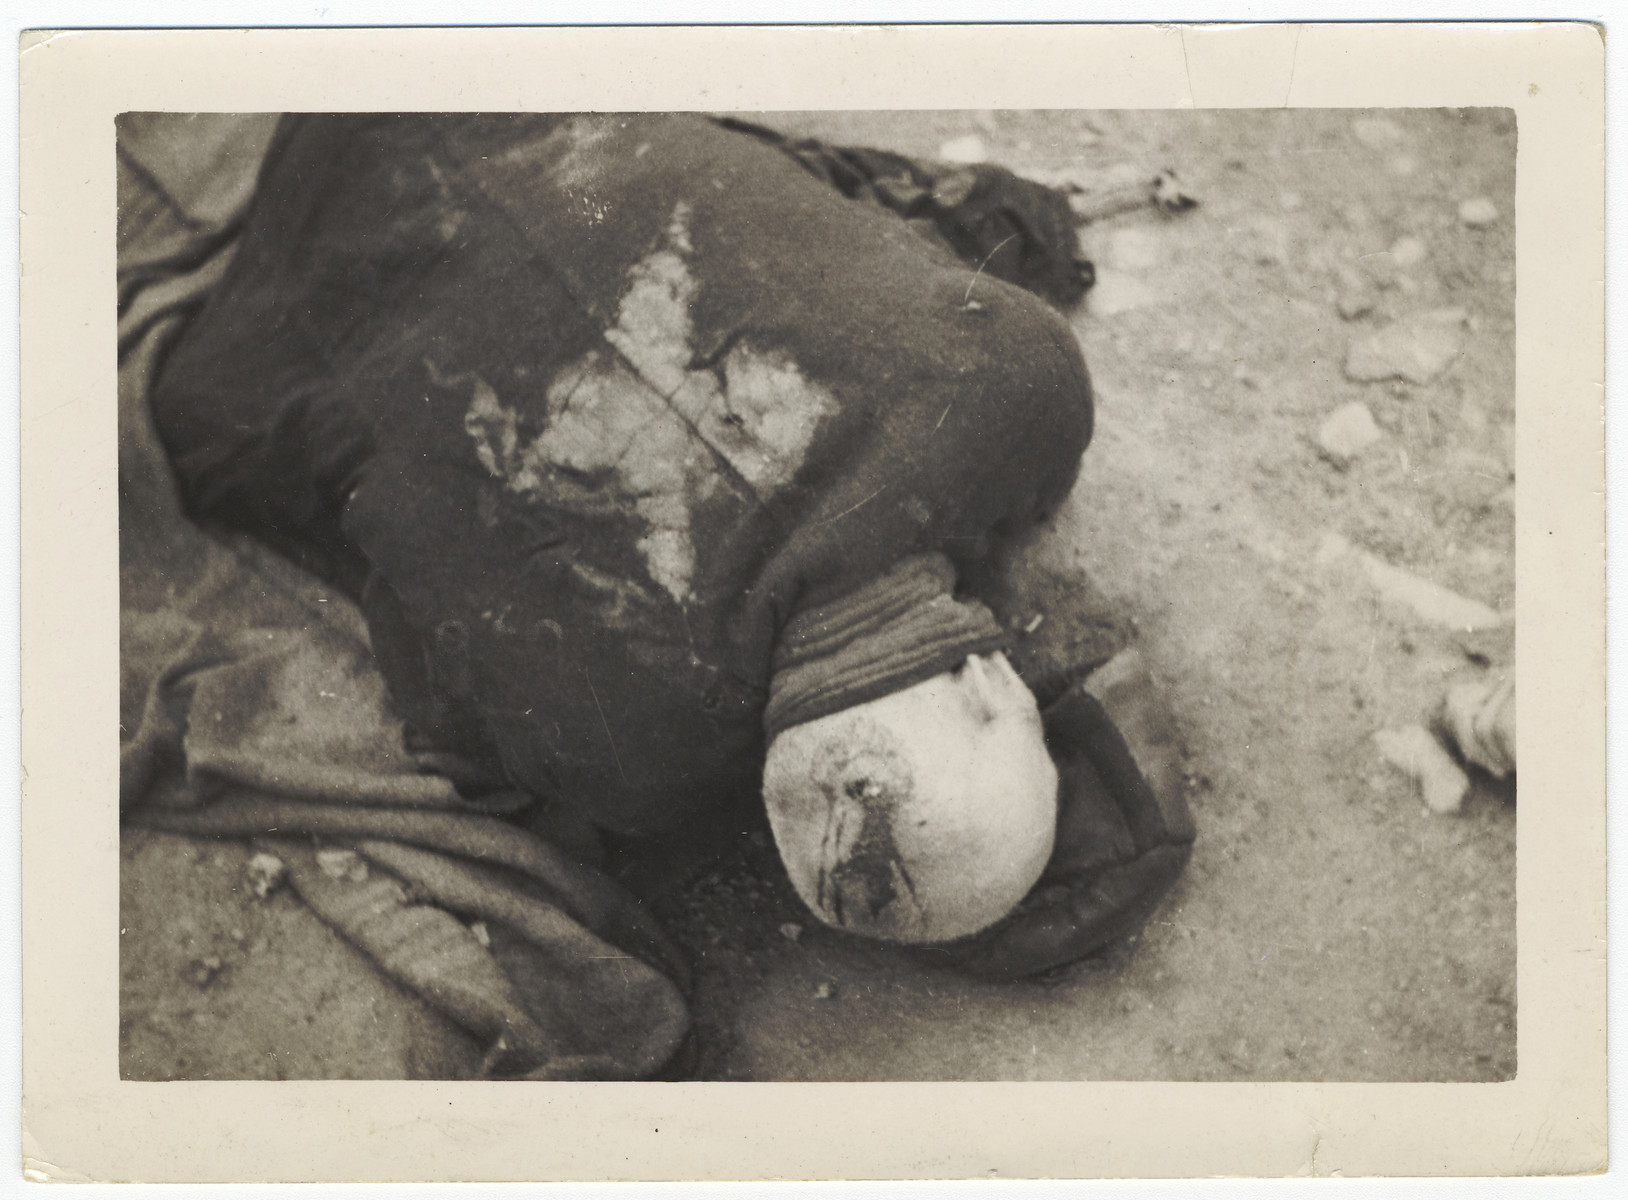 The body of a prisoner executed at the Ohrdruf concentration camp.